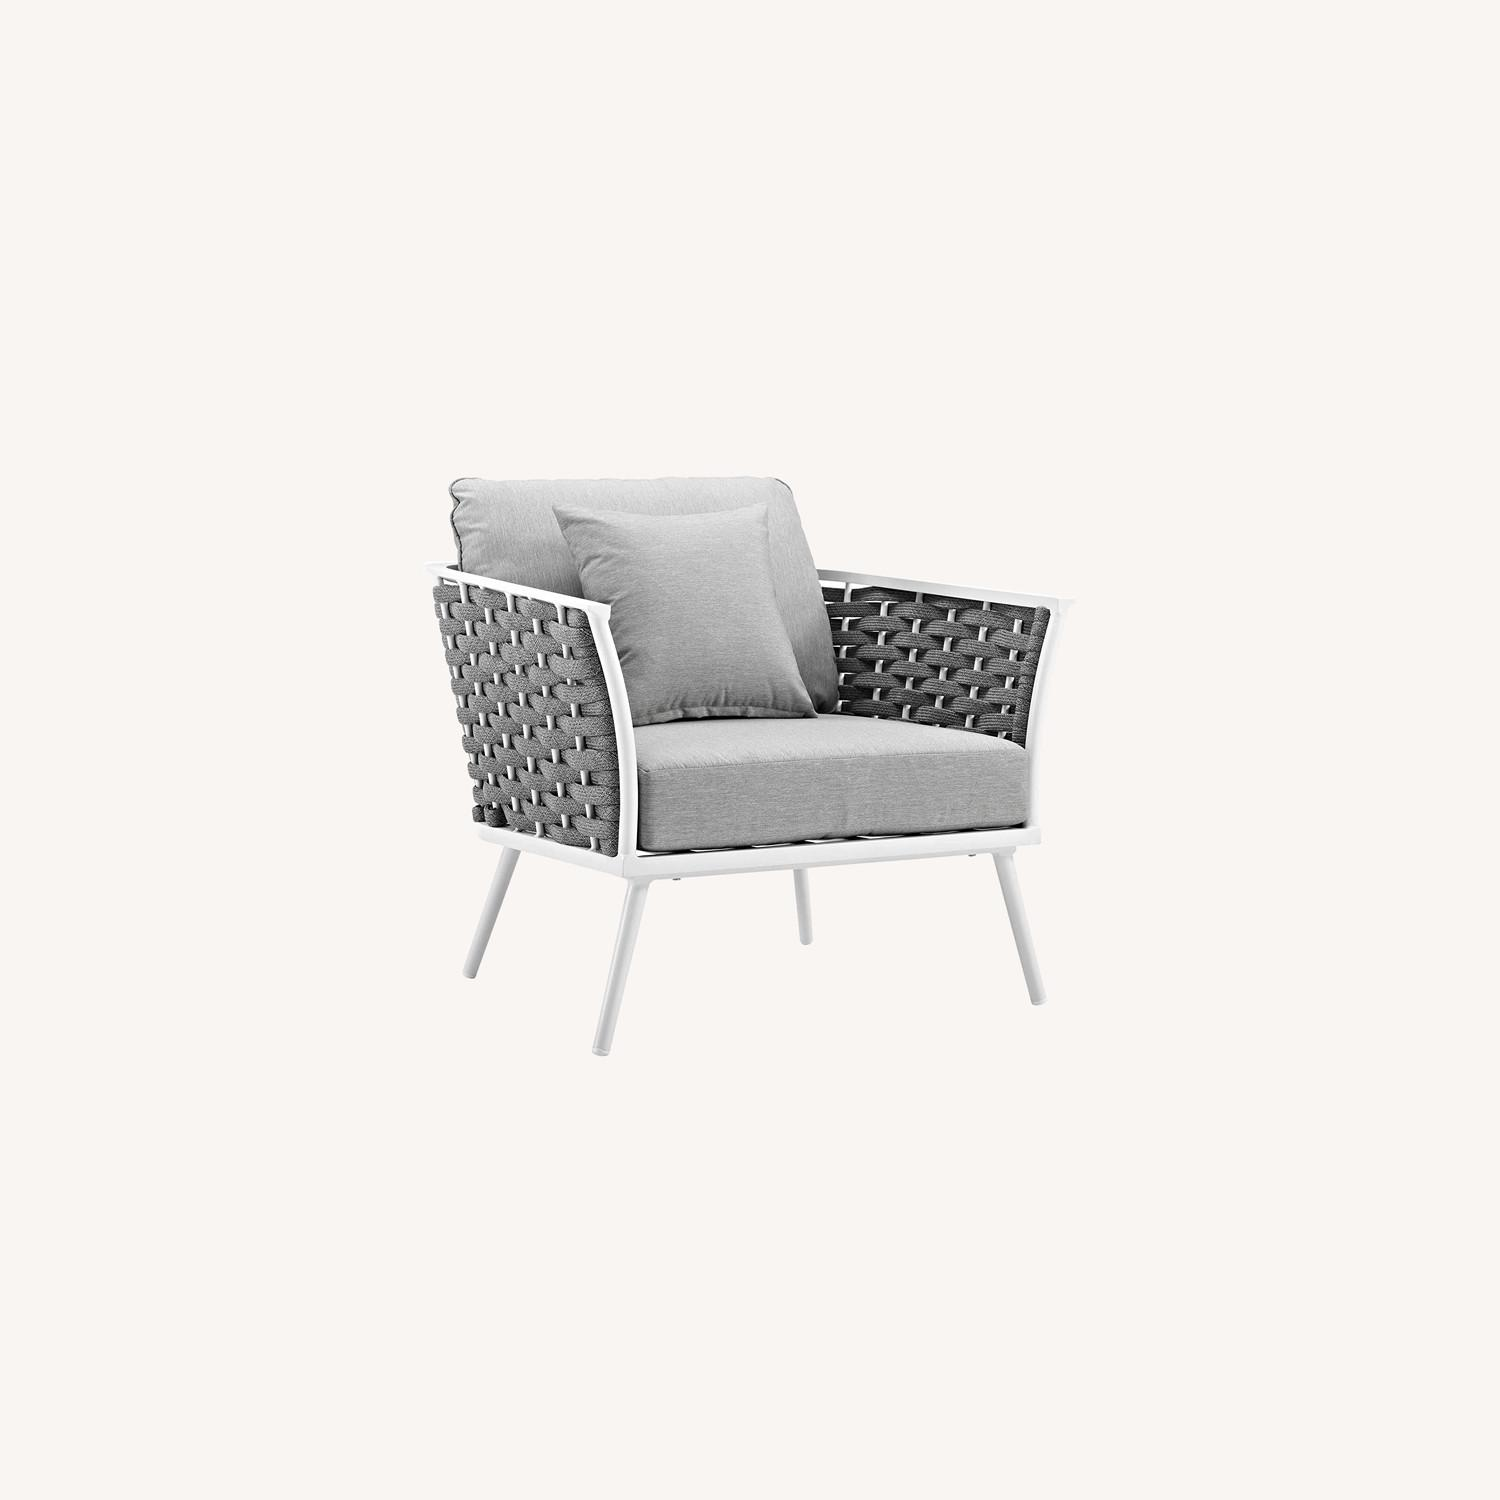 Outdoor Armchair In Gray Fabric W/ Woven Frame - image-6